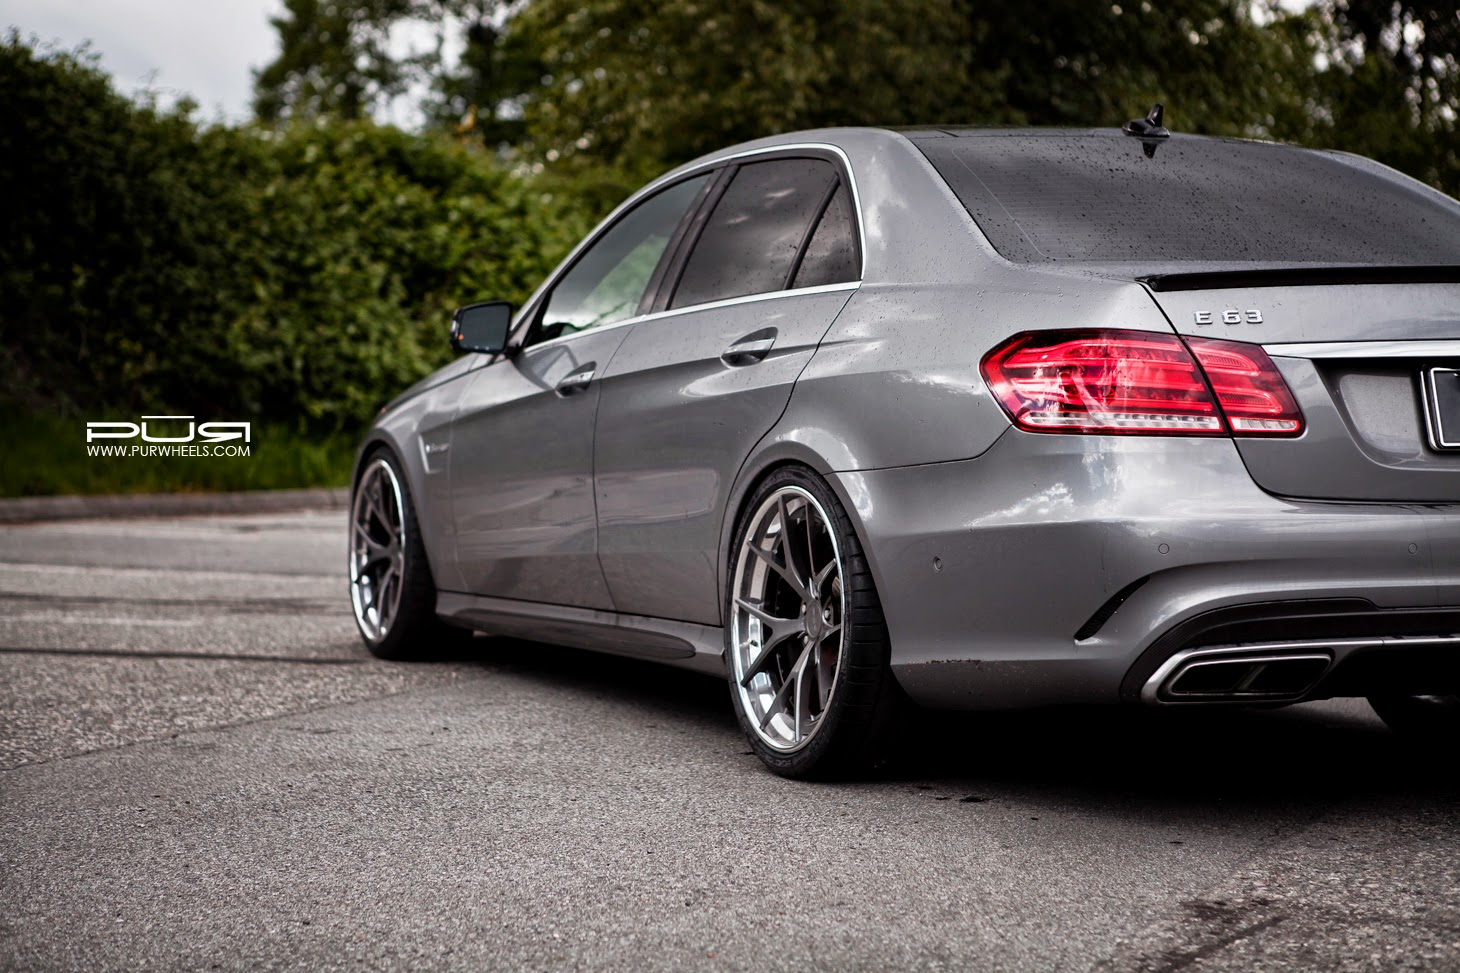 Mercedes benz w212 e63 amg facelift on pur wheels benztuning for Mercedes benz e 63 amg